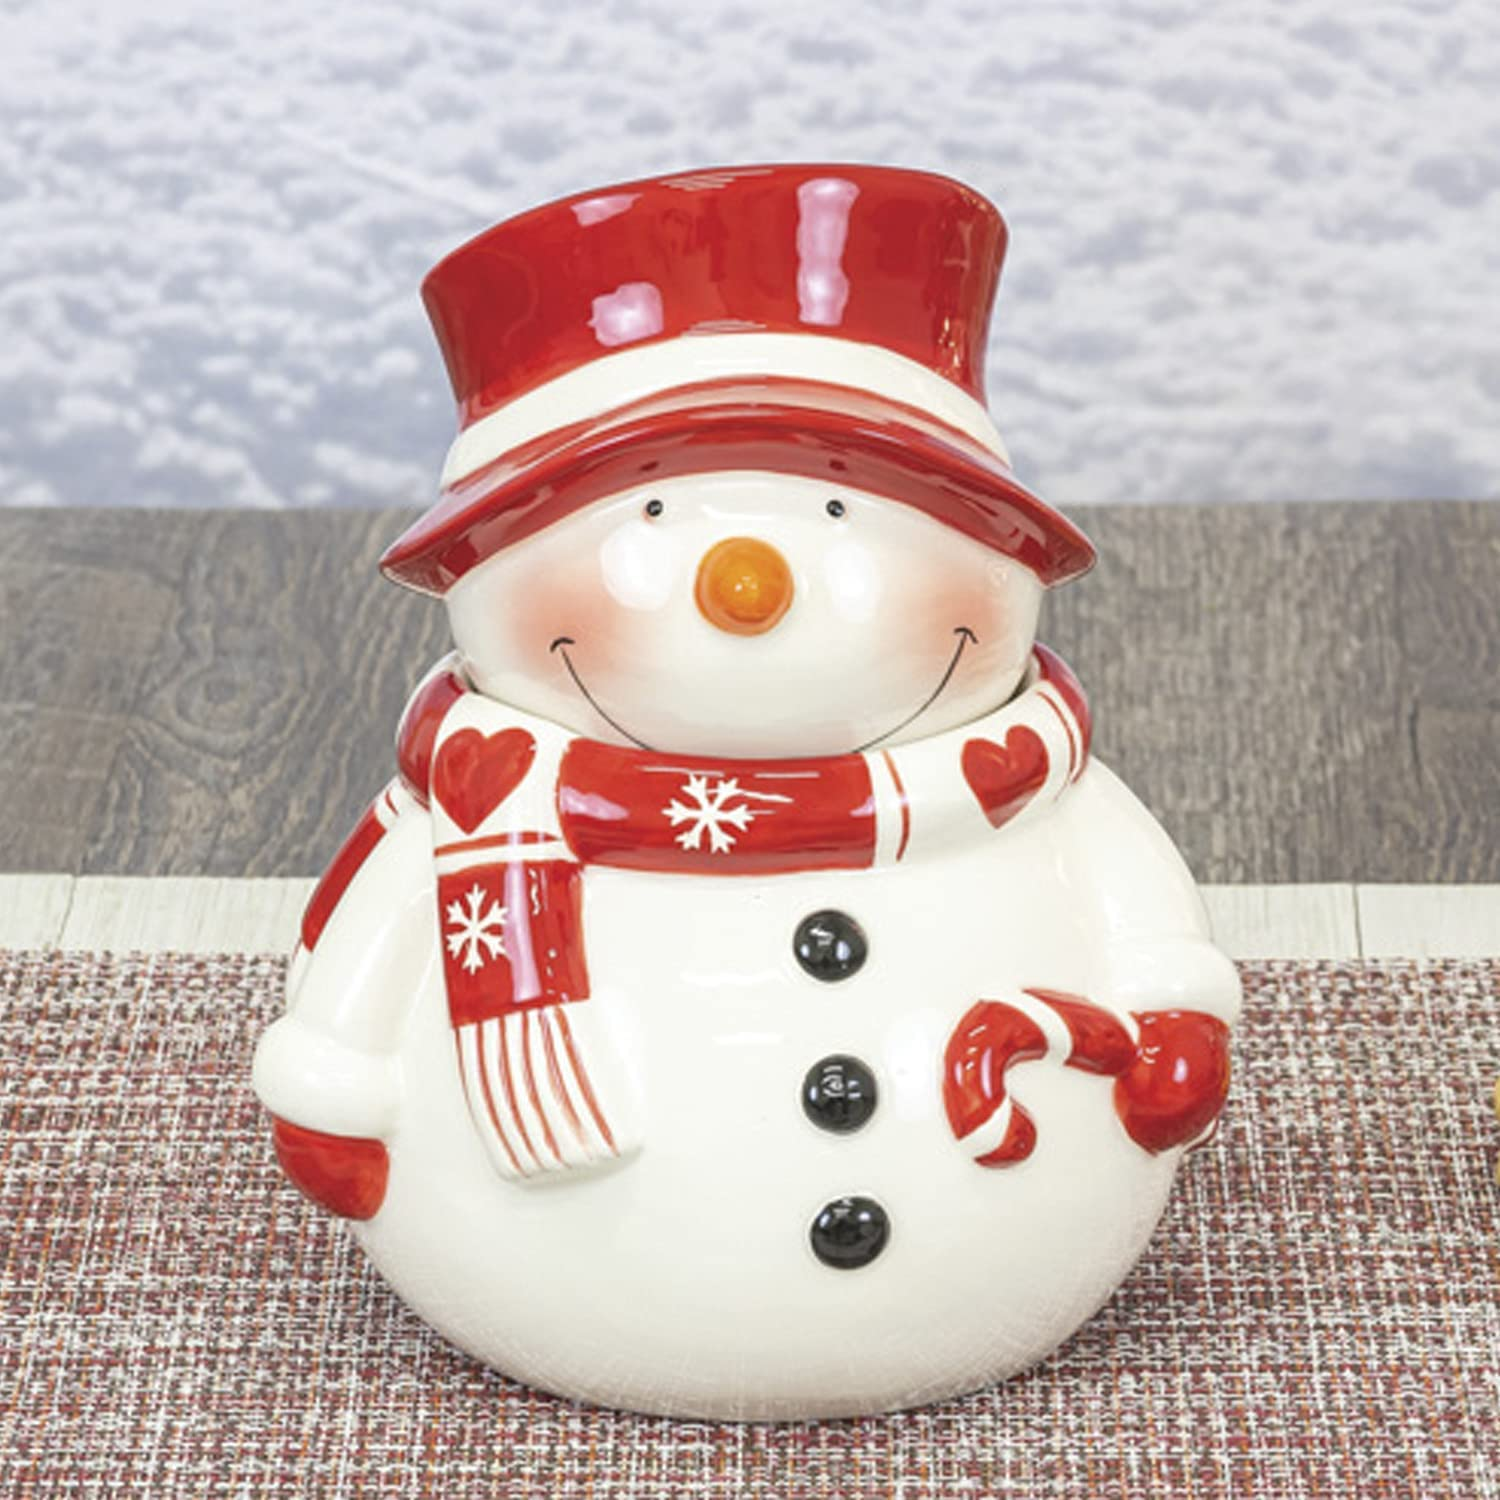 One Holiday Way 9-Inch Cute Red and White Ceramic Decorative Snowman Cookie or Candy Jar with Lid and Candy Cane - Christmas Tabletop Storage Canister Decoration - Xmas Office, Home and Kitchen Decor